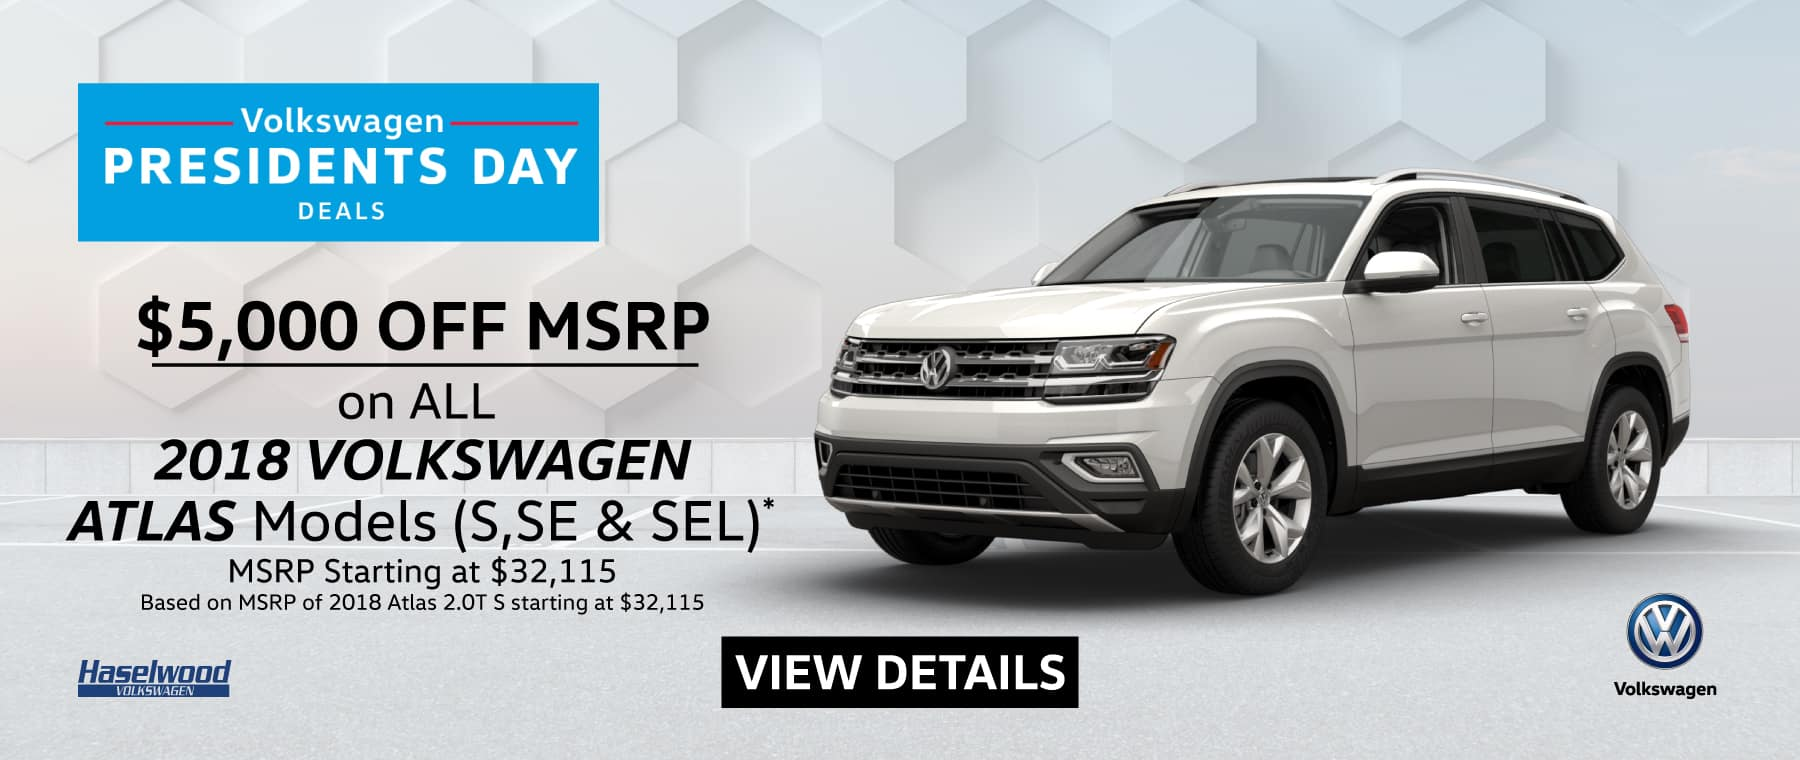 2018 ATLAS All Models  $5,000 OFF MSRP*  *Offer valid on 2018 ATLAS All Models; S, SE, SEL, SEL R-Line, SEL Premium (with or without 4motion). Based on MSRP starting at $32,115. $5,000 off of MSRP. Subject to credit approval. Down payment and monthly payment may vary. For highly qualified customers on approved top tier credit through Volkswagen Credit. Excludes taxes, tags, registration and title, insurance and dealer charges. A negotiable dealer documentary service fee of up to $150 may be added to the sale price or capitalized cost. See dealer for complete details and restrictions. The People First Warranty: 6 years/72,000 miles (whichever occurs first). New Vehicle Limited Warranty on MY2018 and newer VW vehicles, excluding e-Golf. See owner's literature or dealer for warranty exclusions and limitations. Exp. 2/28/2019.